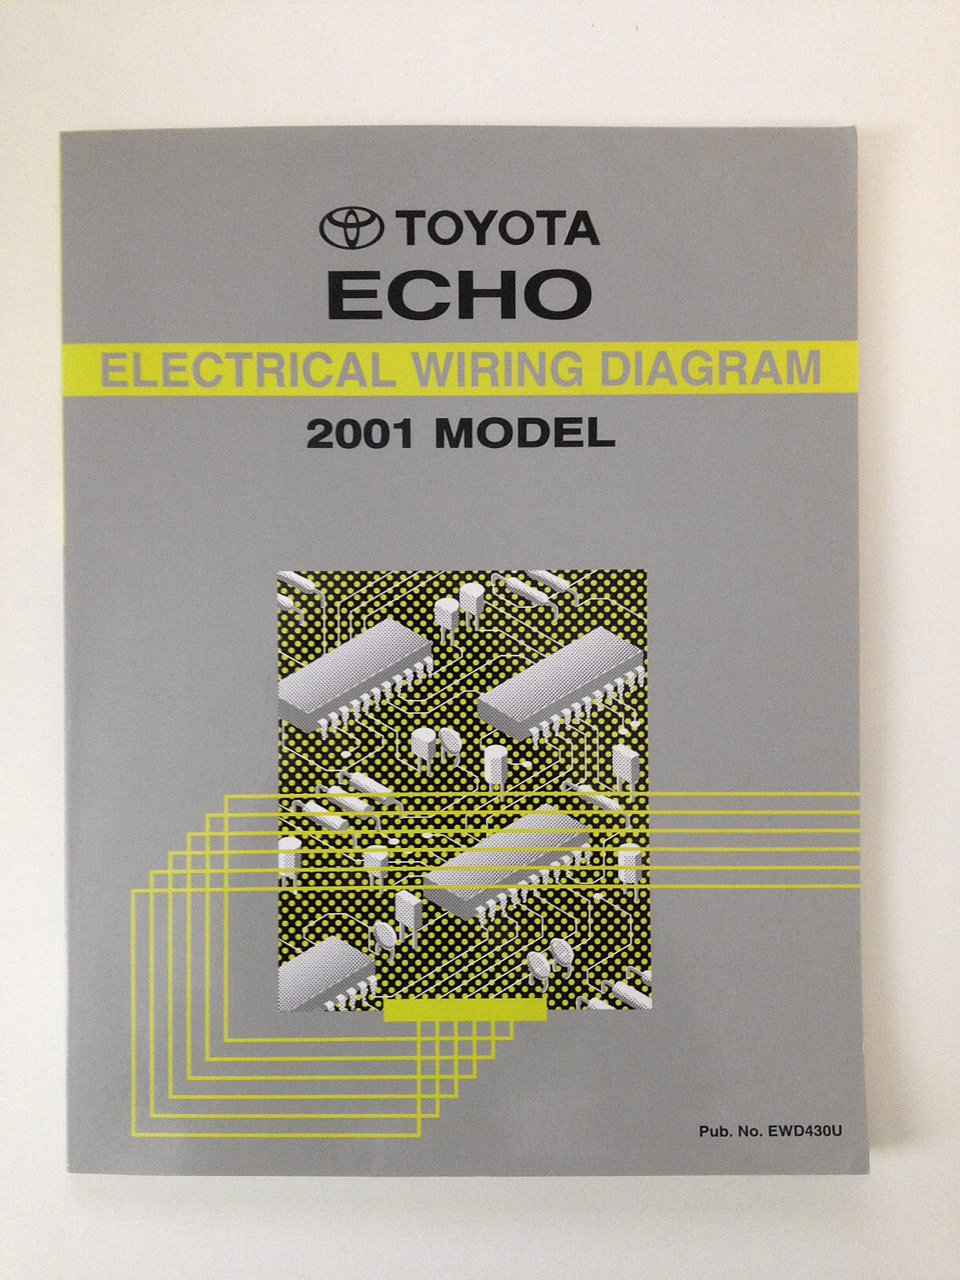 toyota ECHO electrical wiring diagram 2001 model: toyota motor corporation:  Amazon.com: Books